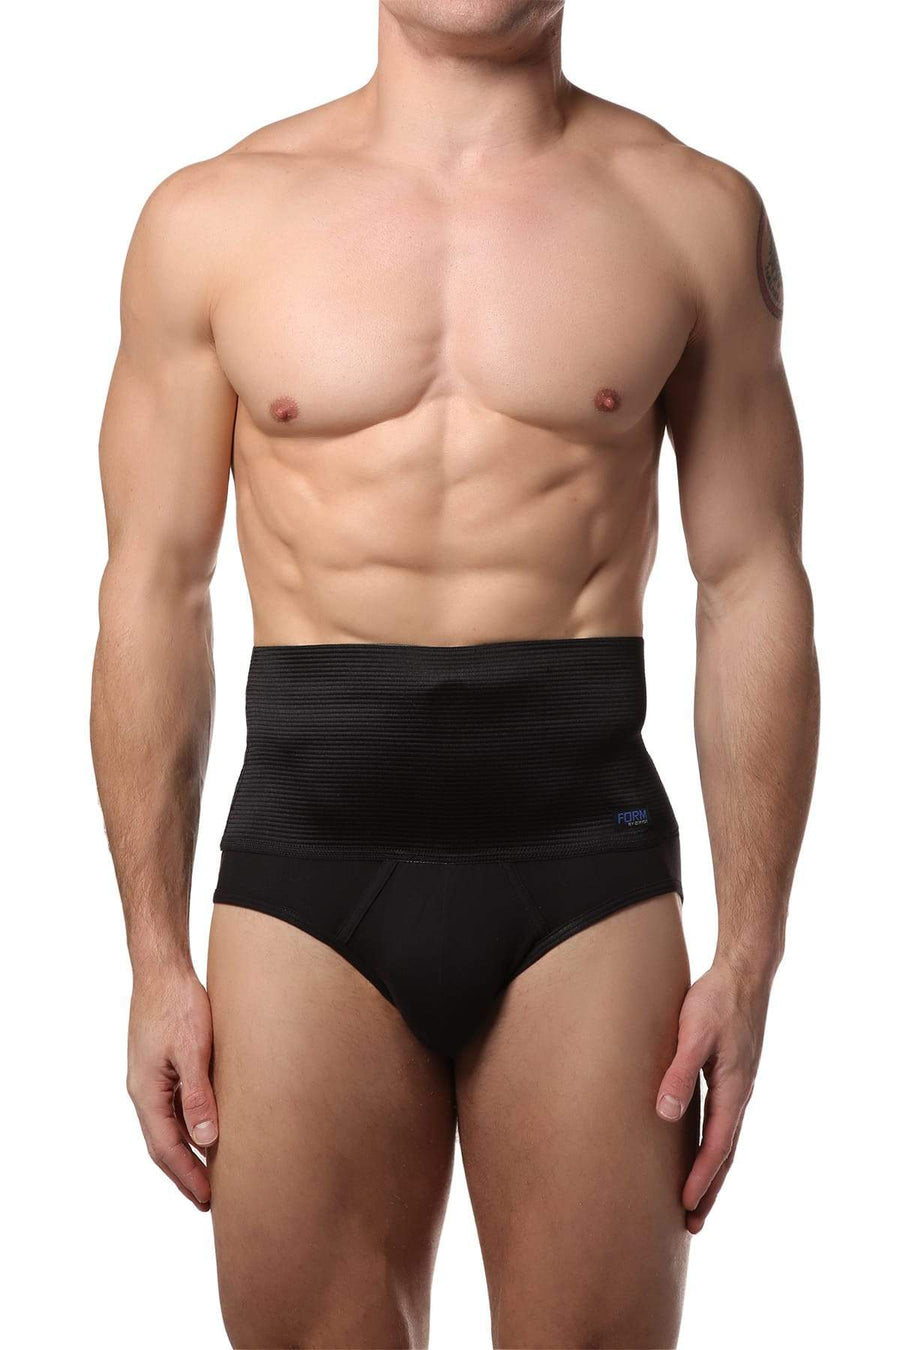 Briefs - 2(X)IST Black 6 Inch Shaper Brief -   jetcube